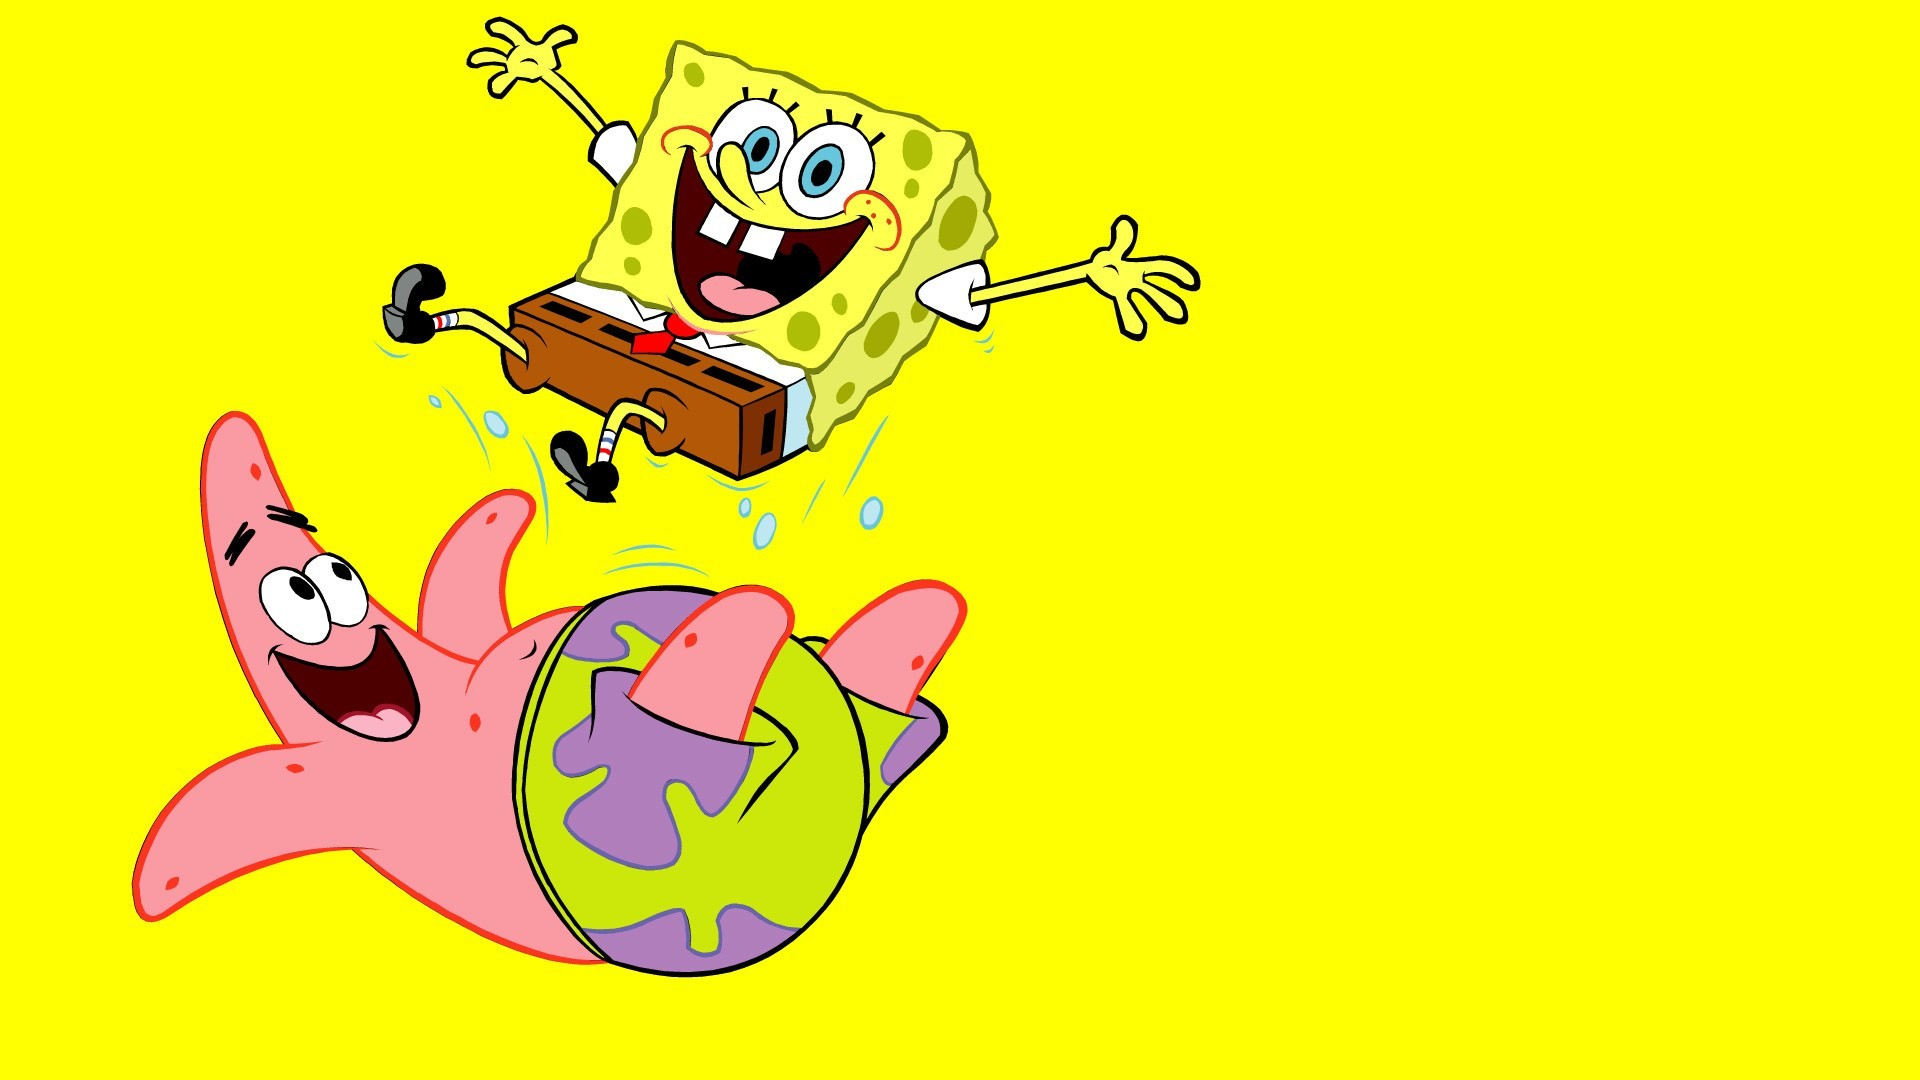 1920x1080 spongebob background wallpaper for computer free